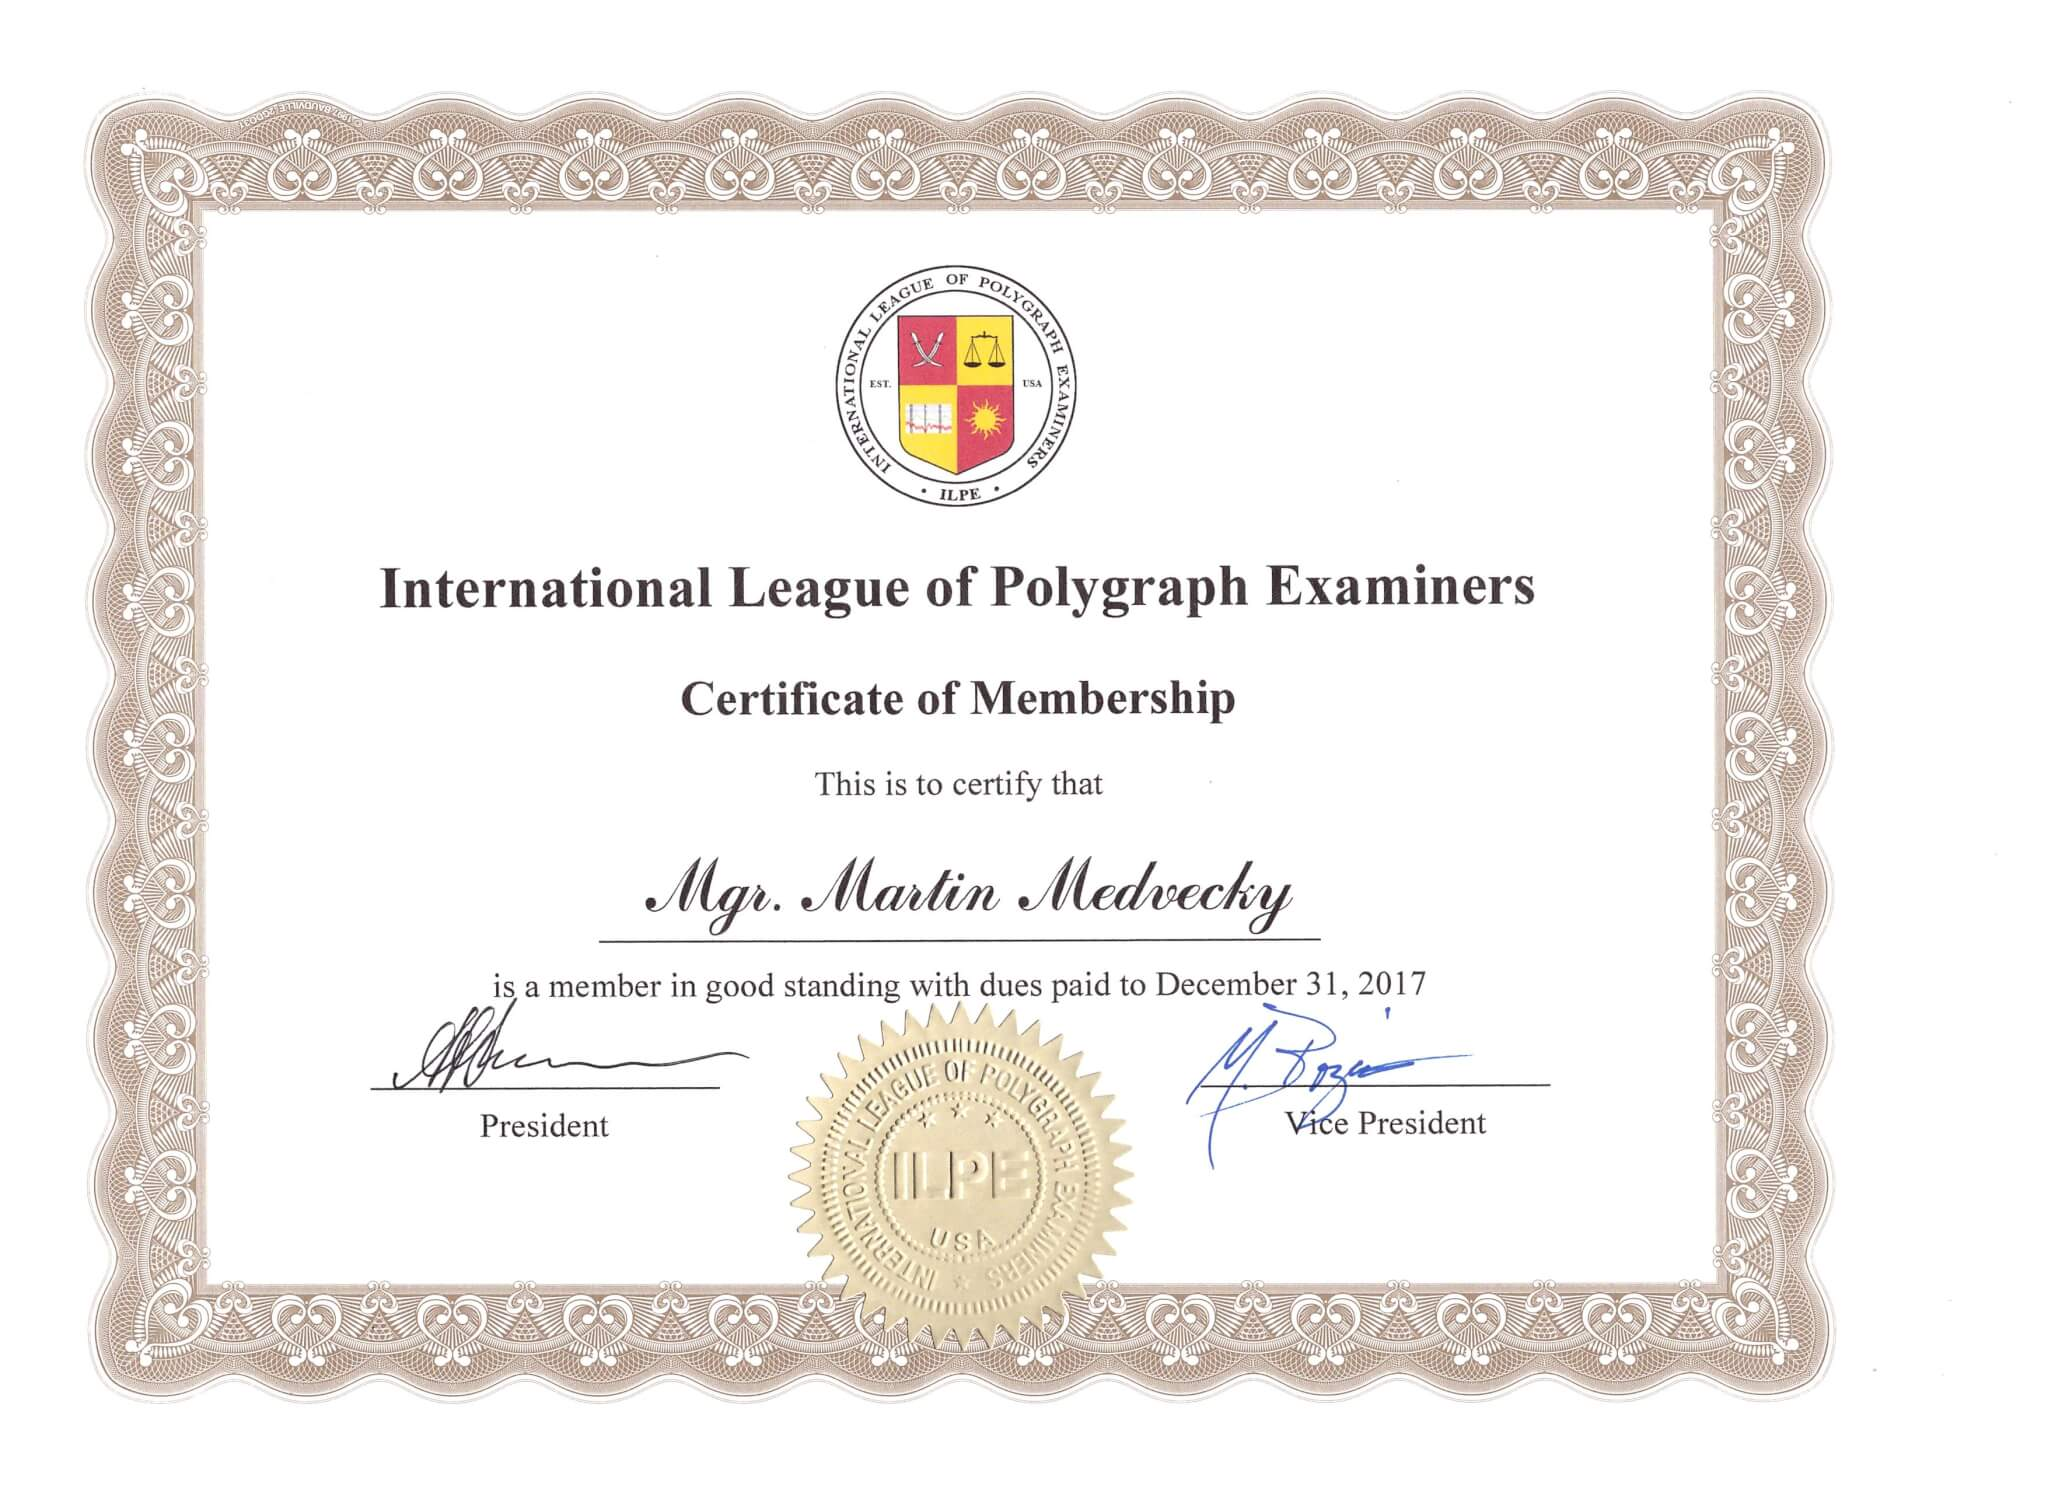 Certificate of membership 2017